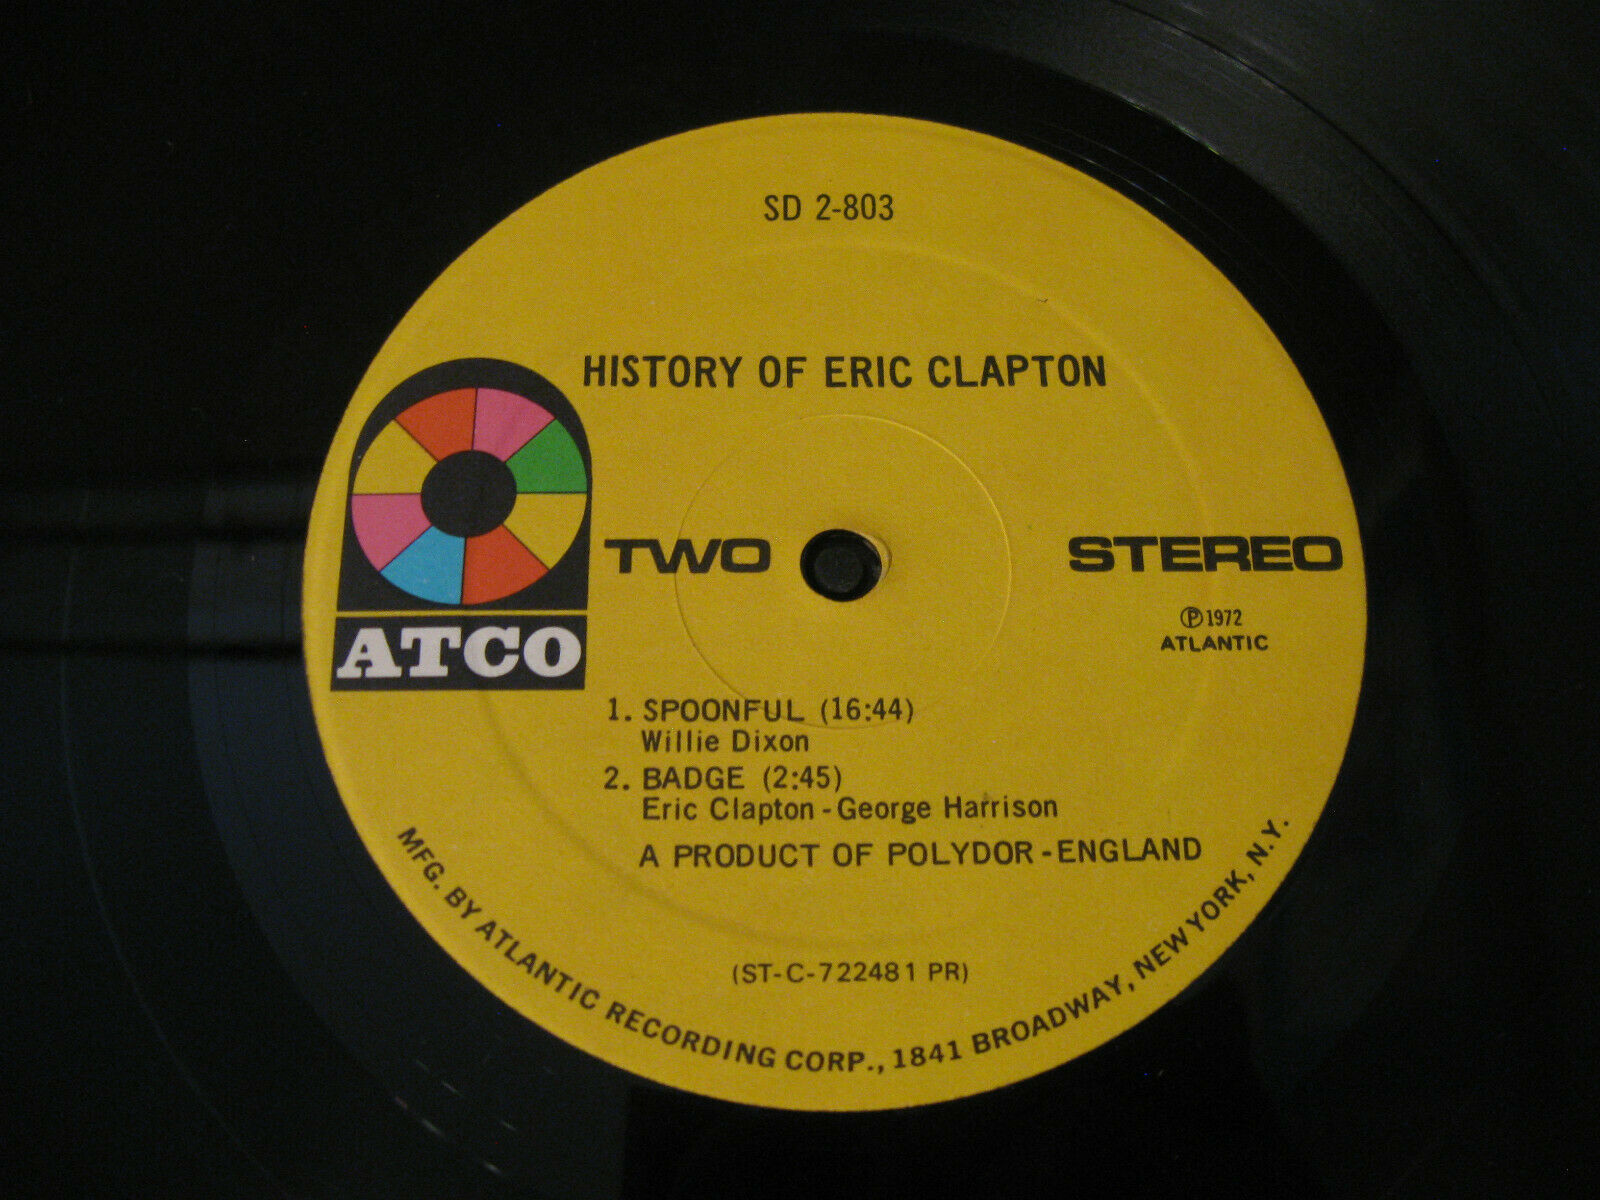 Eric Clapton History Of Atco SD 2-803 Stereo Double Vinyl Record LP image 6